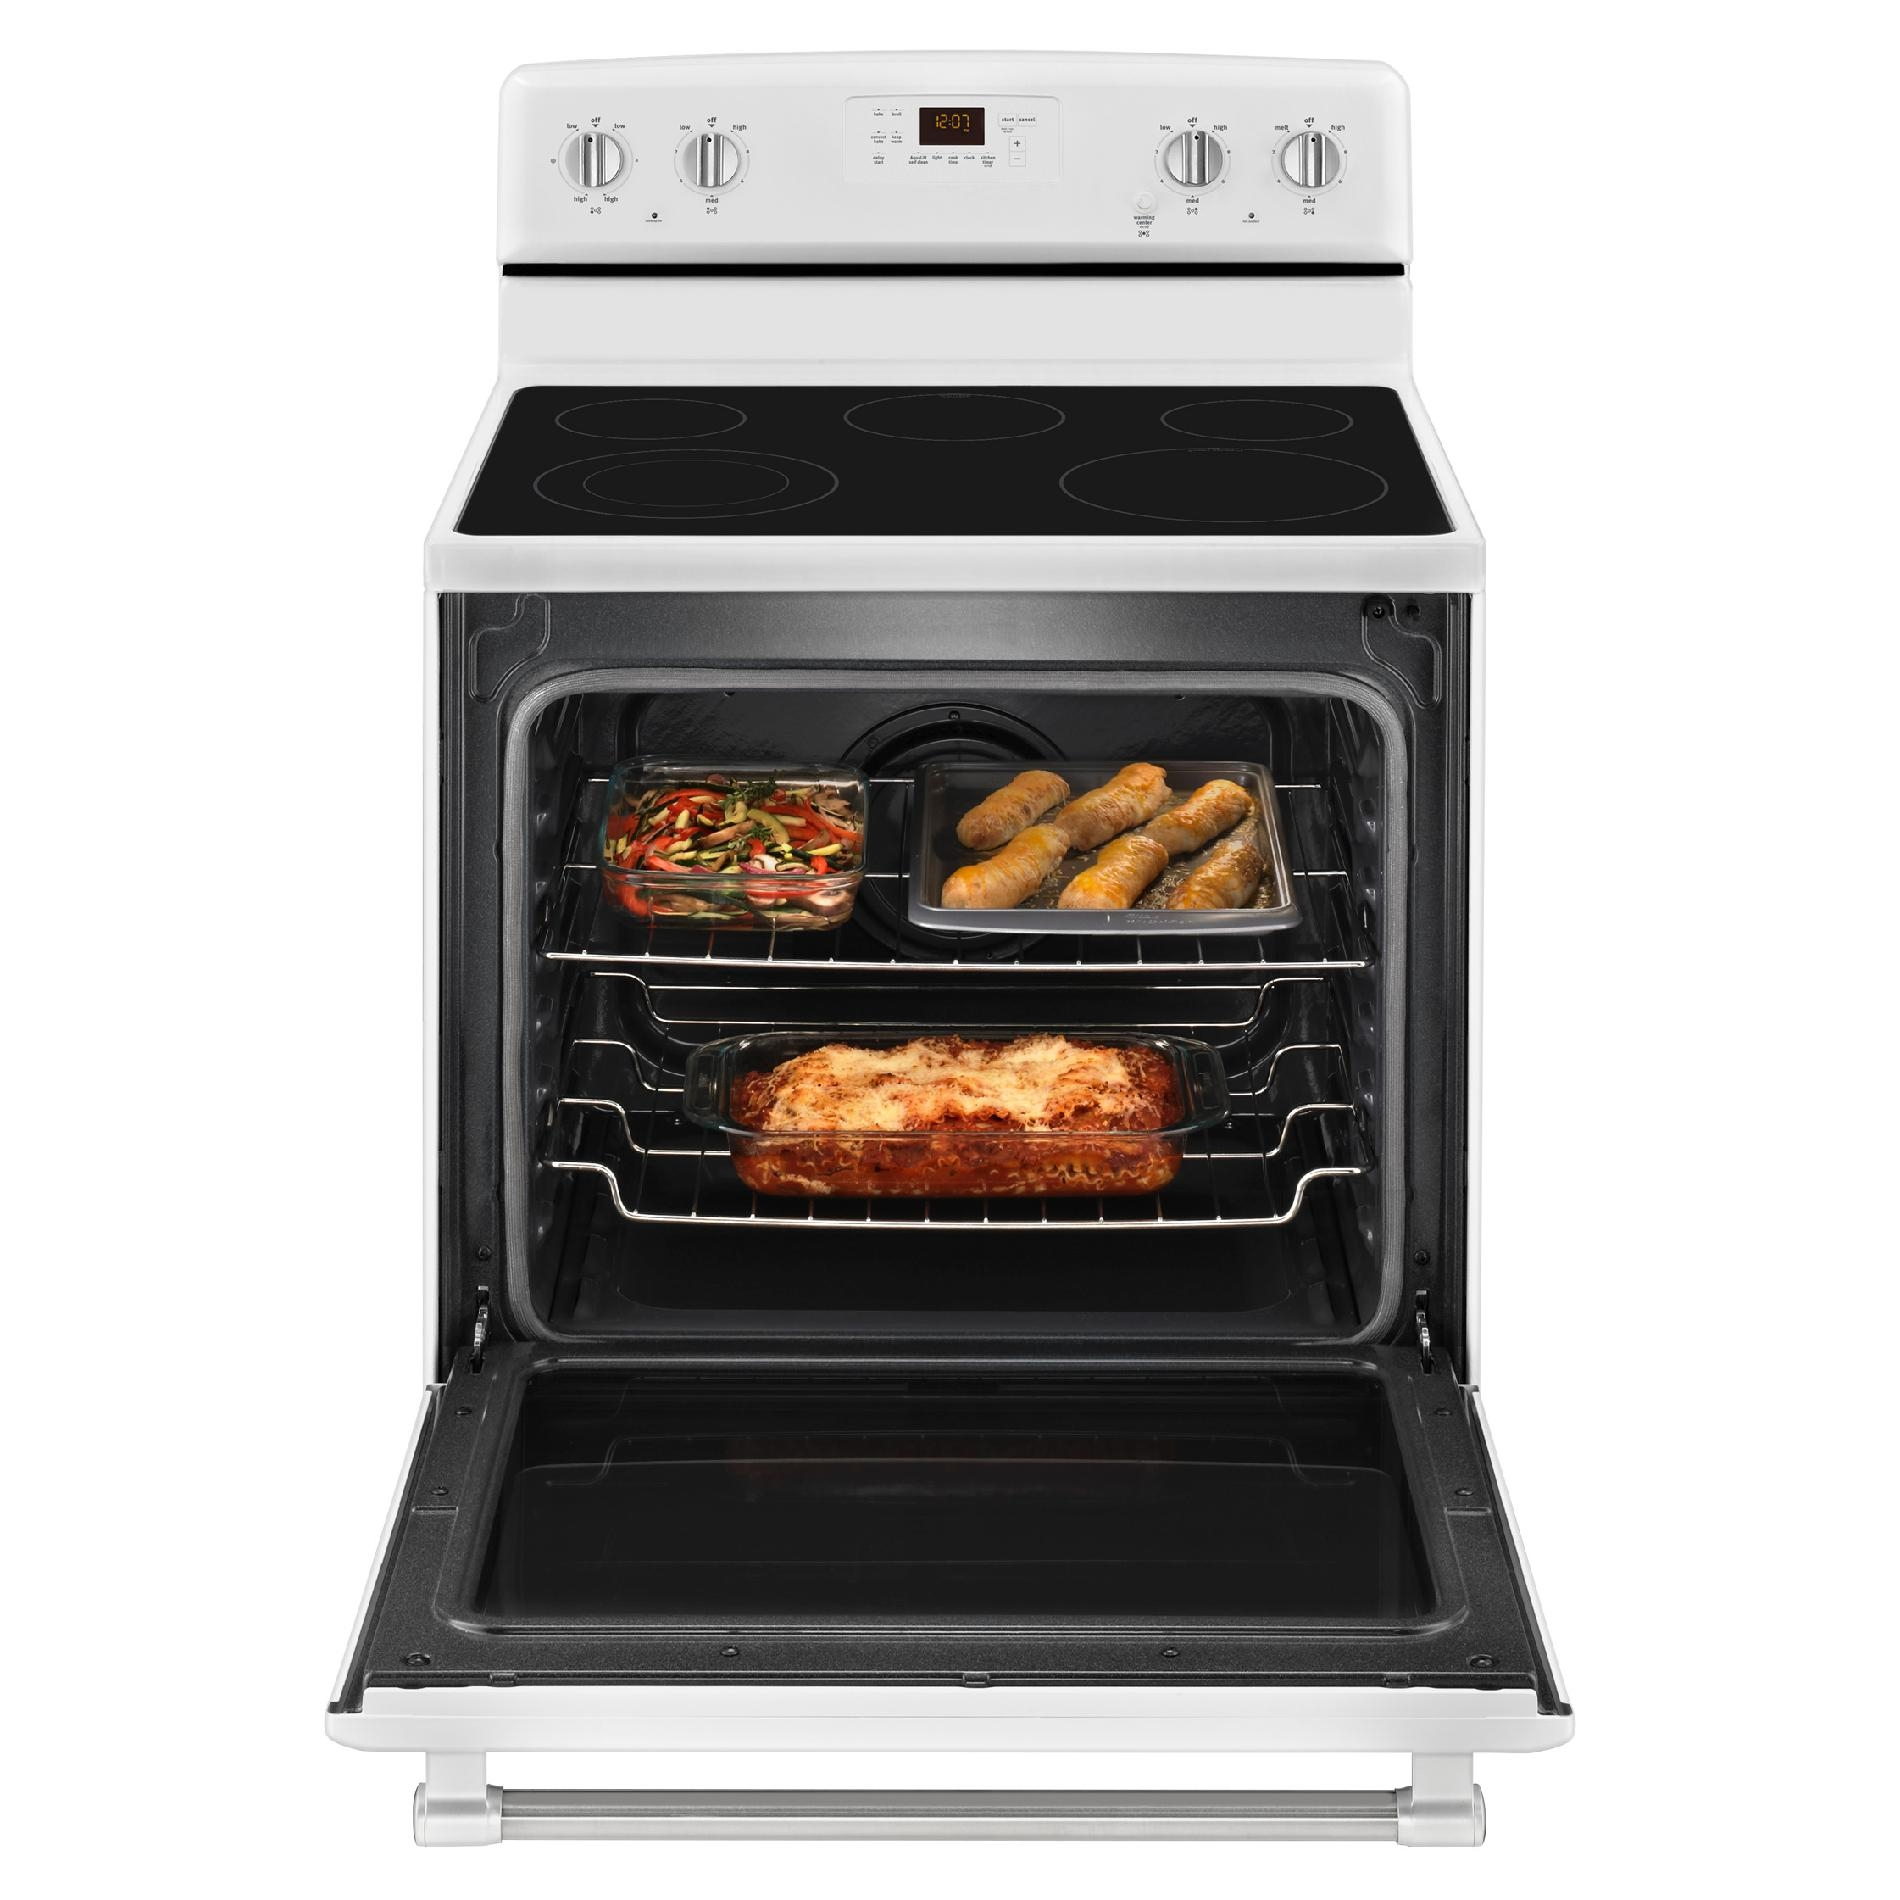 Maytag MER8600DH 6.2 cu. ft. Electric Range w/ Dual Element - White w/ Stainless Handle